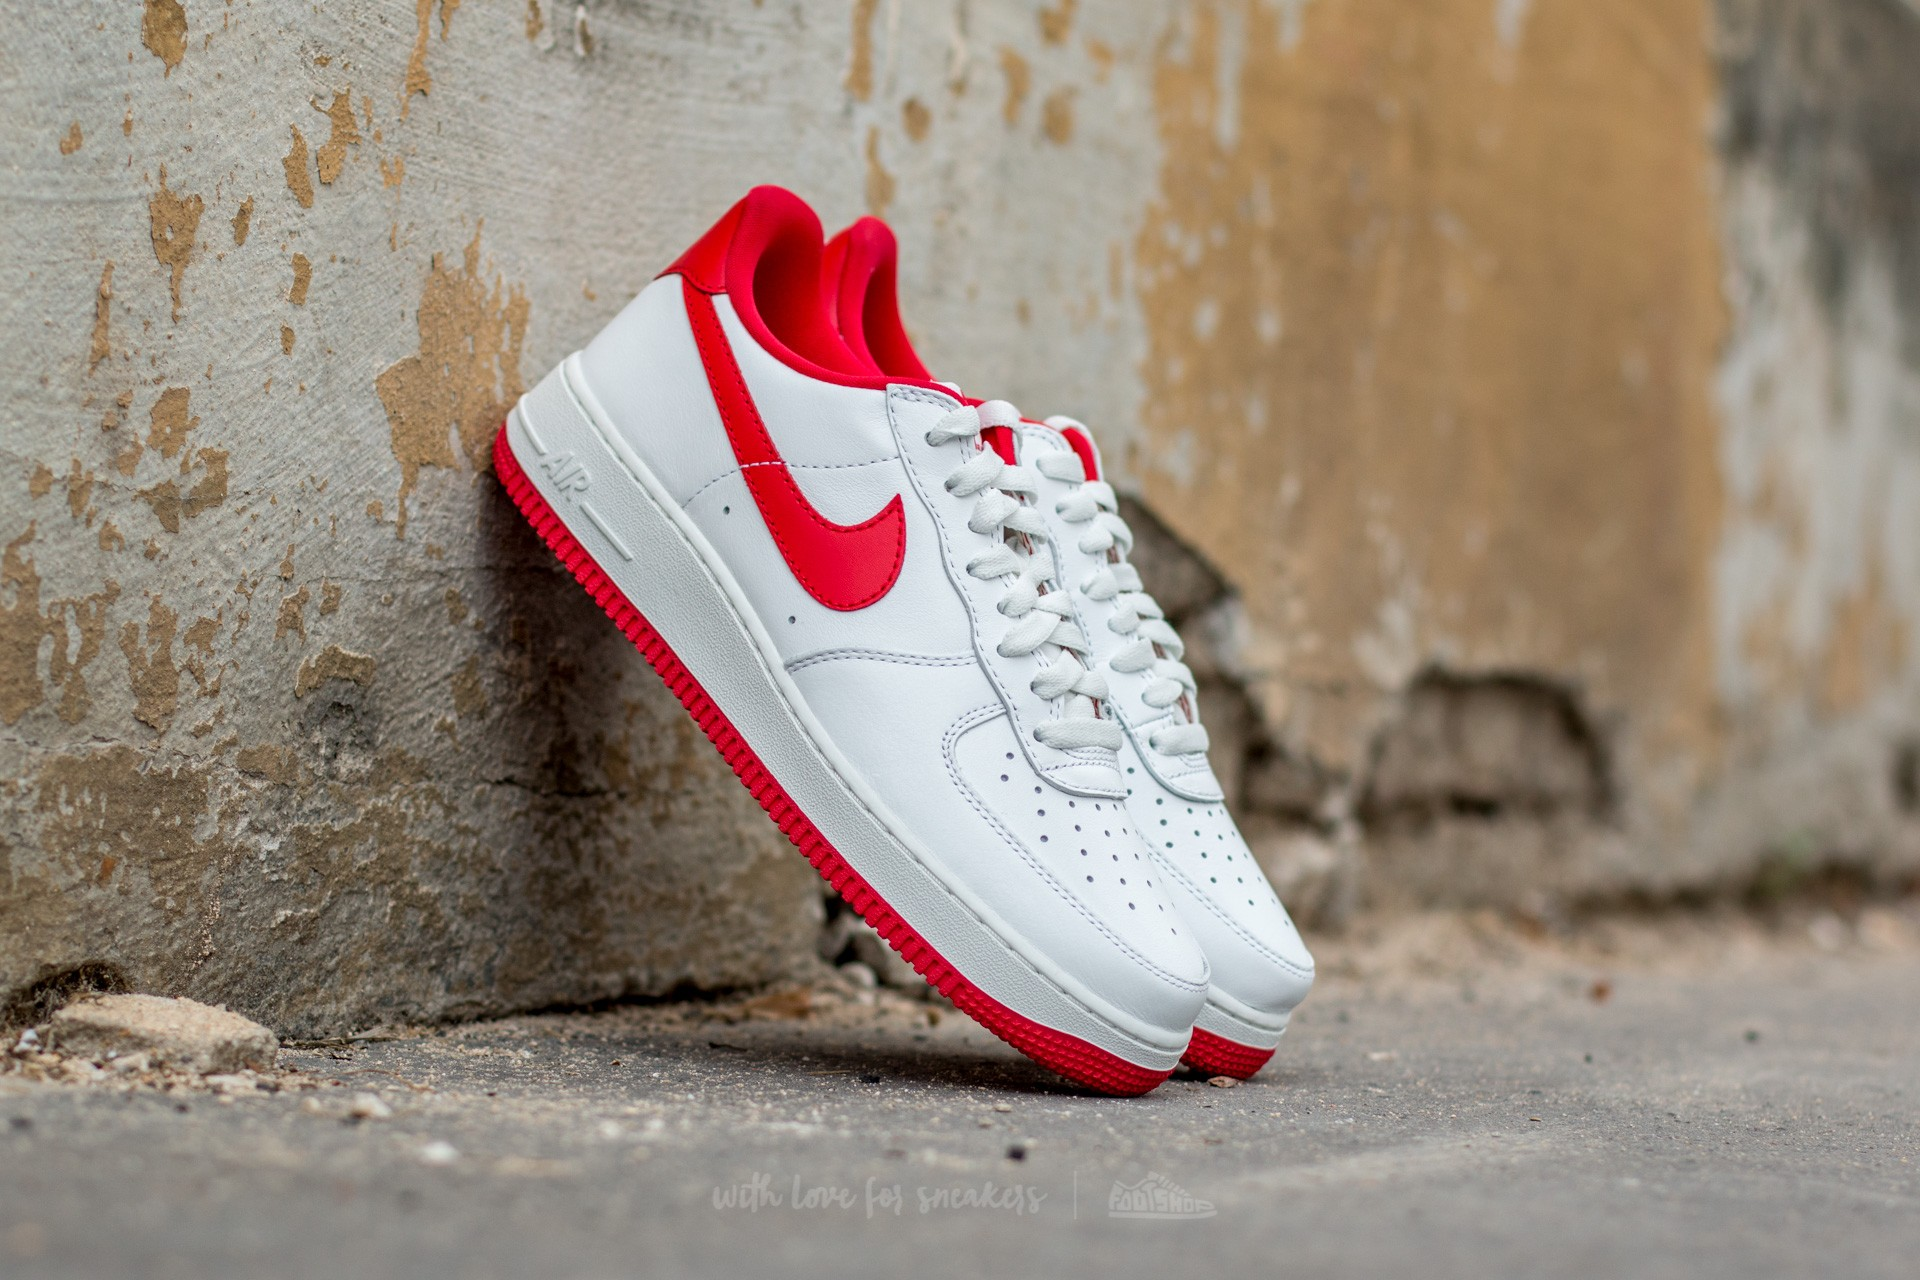 Nike Air Force 1 Low Retro Summit White/ University Red